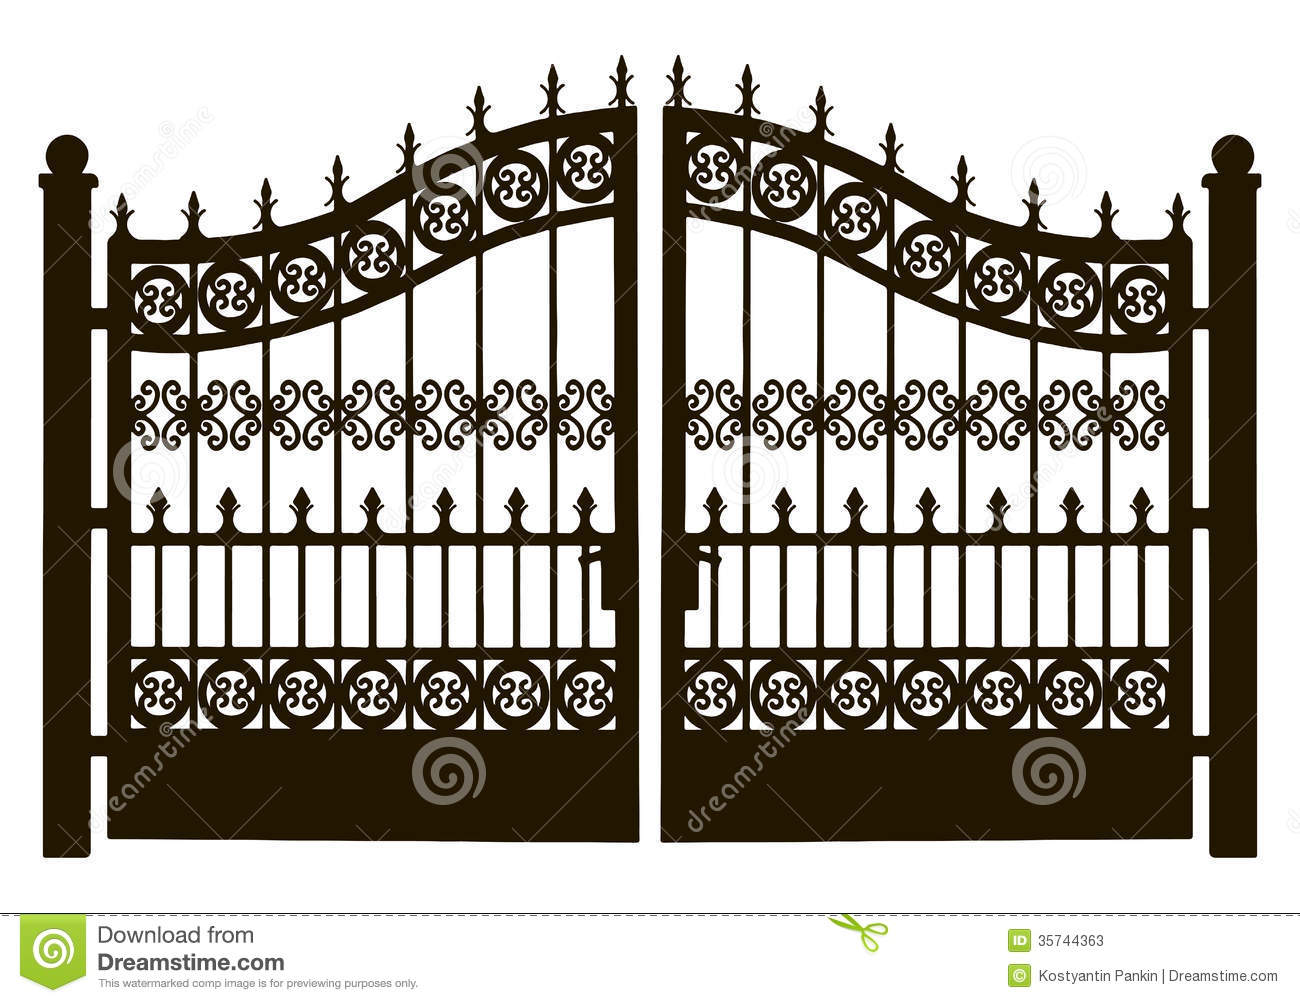 Gate clipart #13, Download drawings